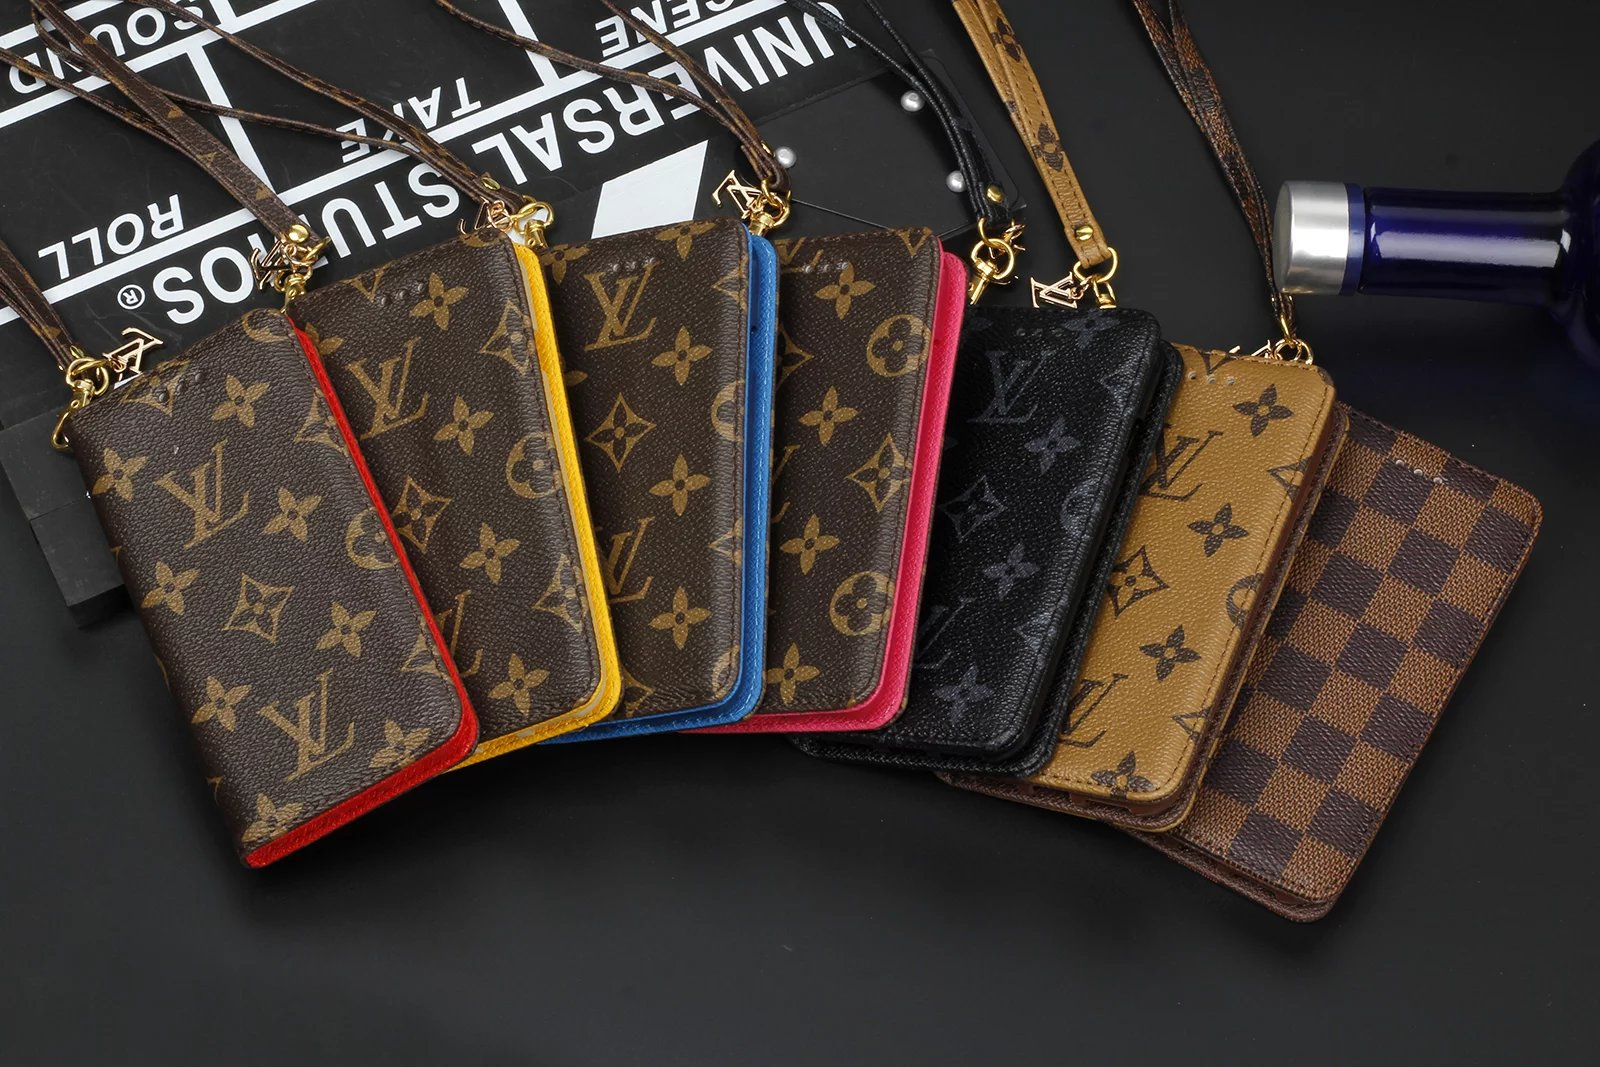 schutzhülle für iphone iphone hülle mit eigenem foto Louis Vuitton iphone6s plus hülle iphone 6 wann kommt es raus 6slbstdesignte handyhülle handy cover iphone 6s Plus 6slbst gestalten iphone 6s Plus ilikonhülle iphone 6 daten iphone 6 akku